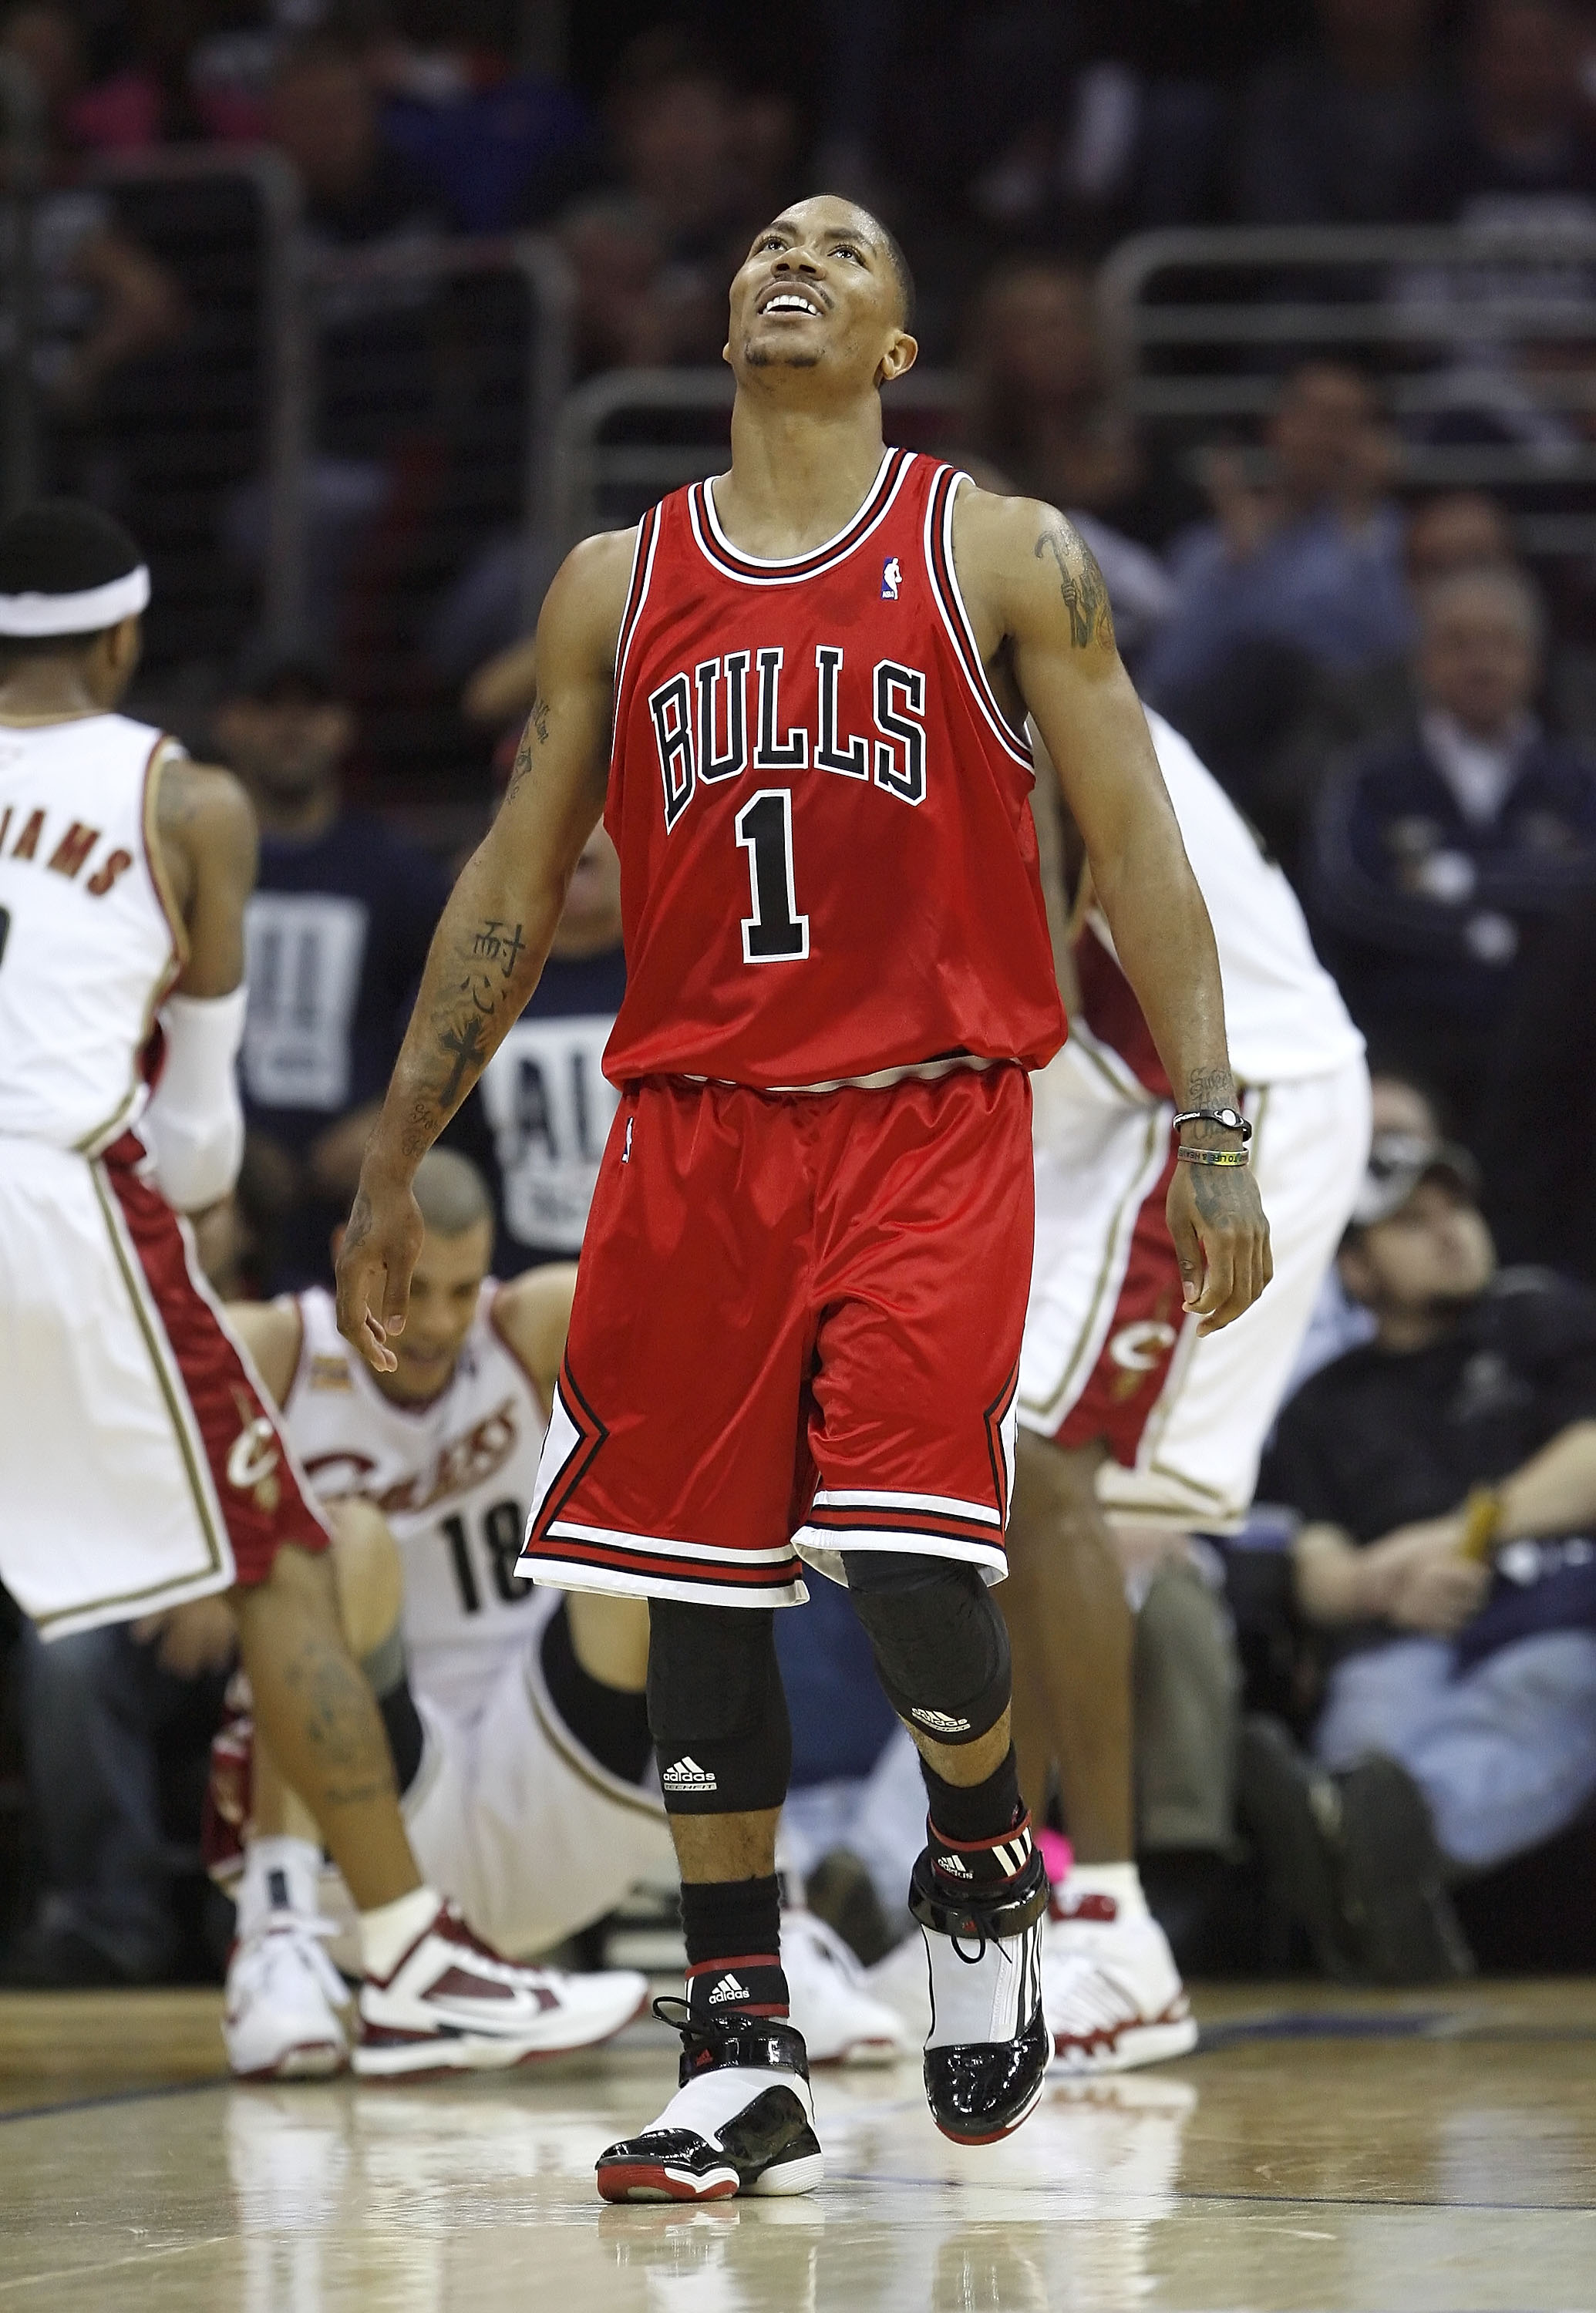 CLEVELAND - APRIL 17:  Derrick Rose #1 of the Chicago Bulls reacts after being called for a foul against Anthony Parker #18 of the Cleveland Cavaliers in Game One of the Eastern Conference Quarterfinals during the 2010 NBA Playoffs at Quicken Loans Arena